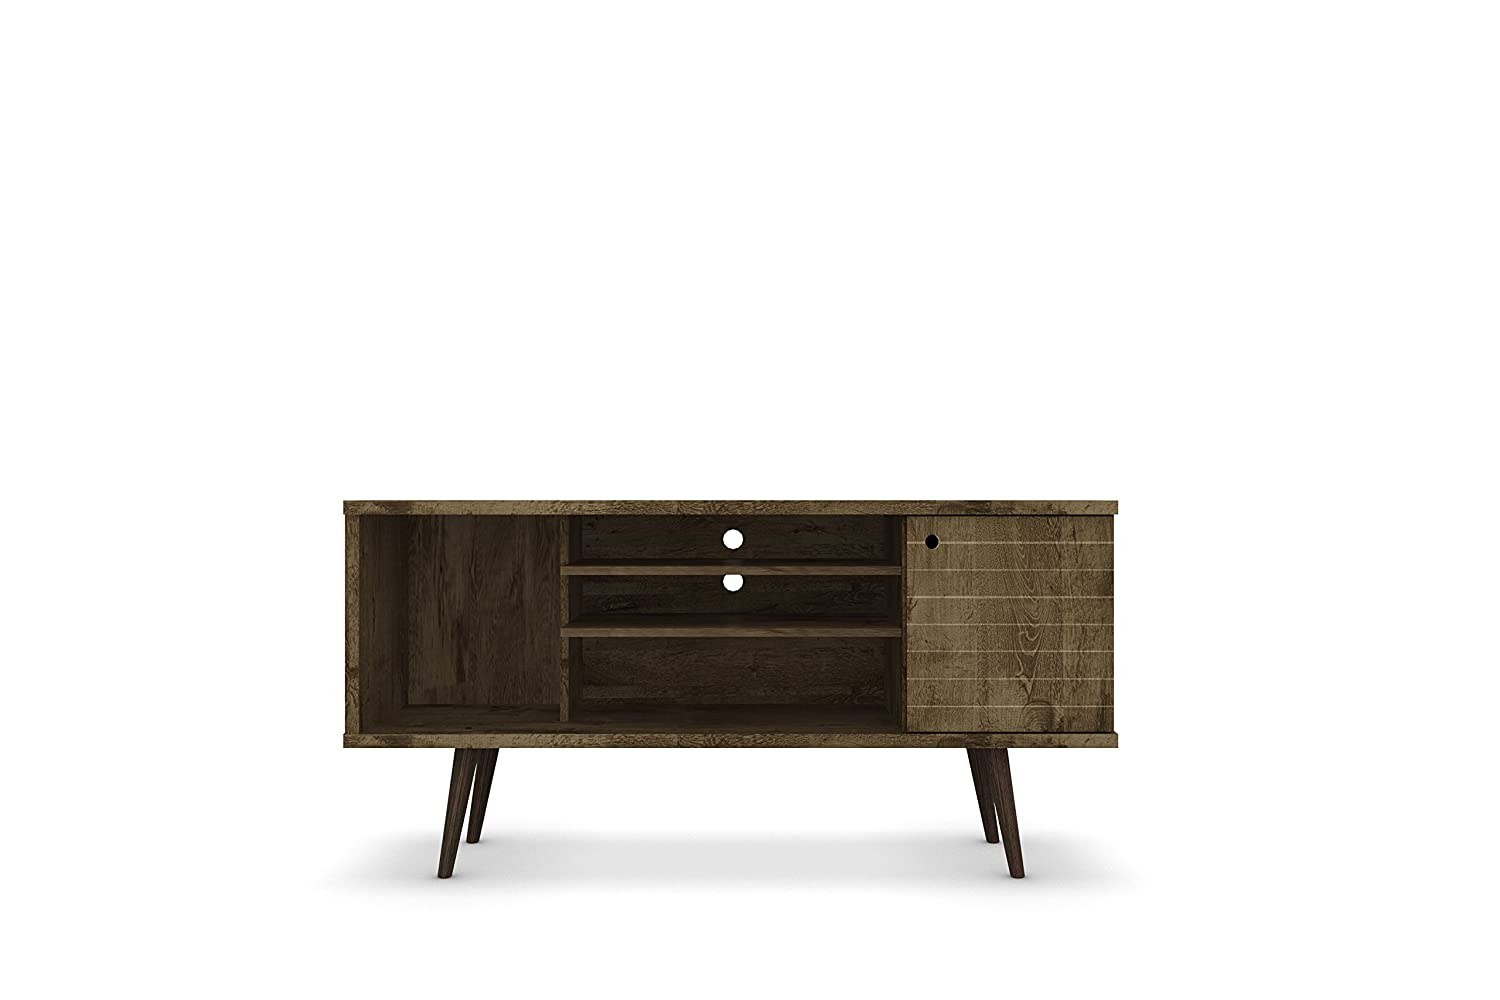 Manhattan Comfort Liberty Collection Mid Century Modern Tv Stand With One Cabinet And Three Open Shelves And One Cubby With Splayed Legs, Wood by Manhattan Comfort